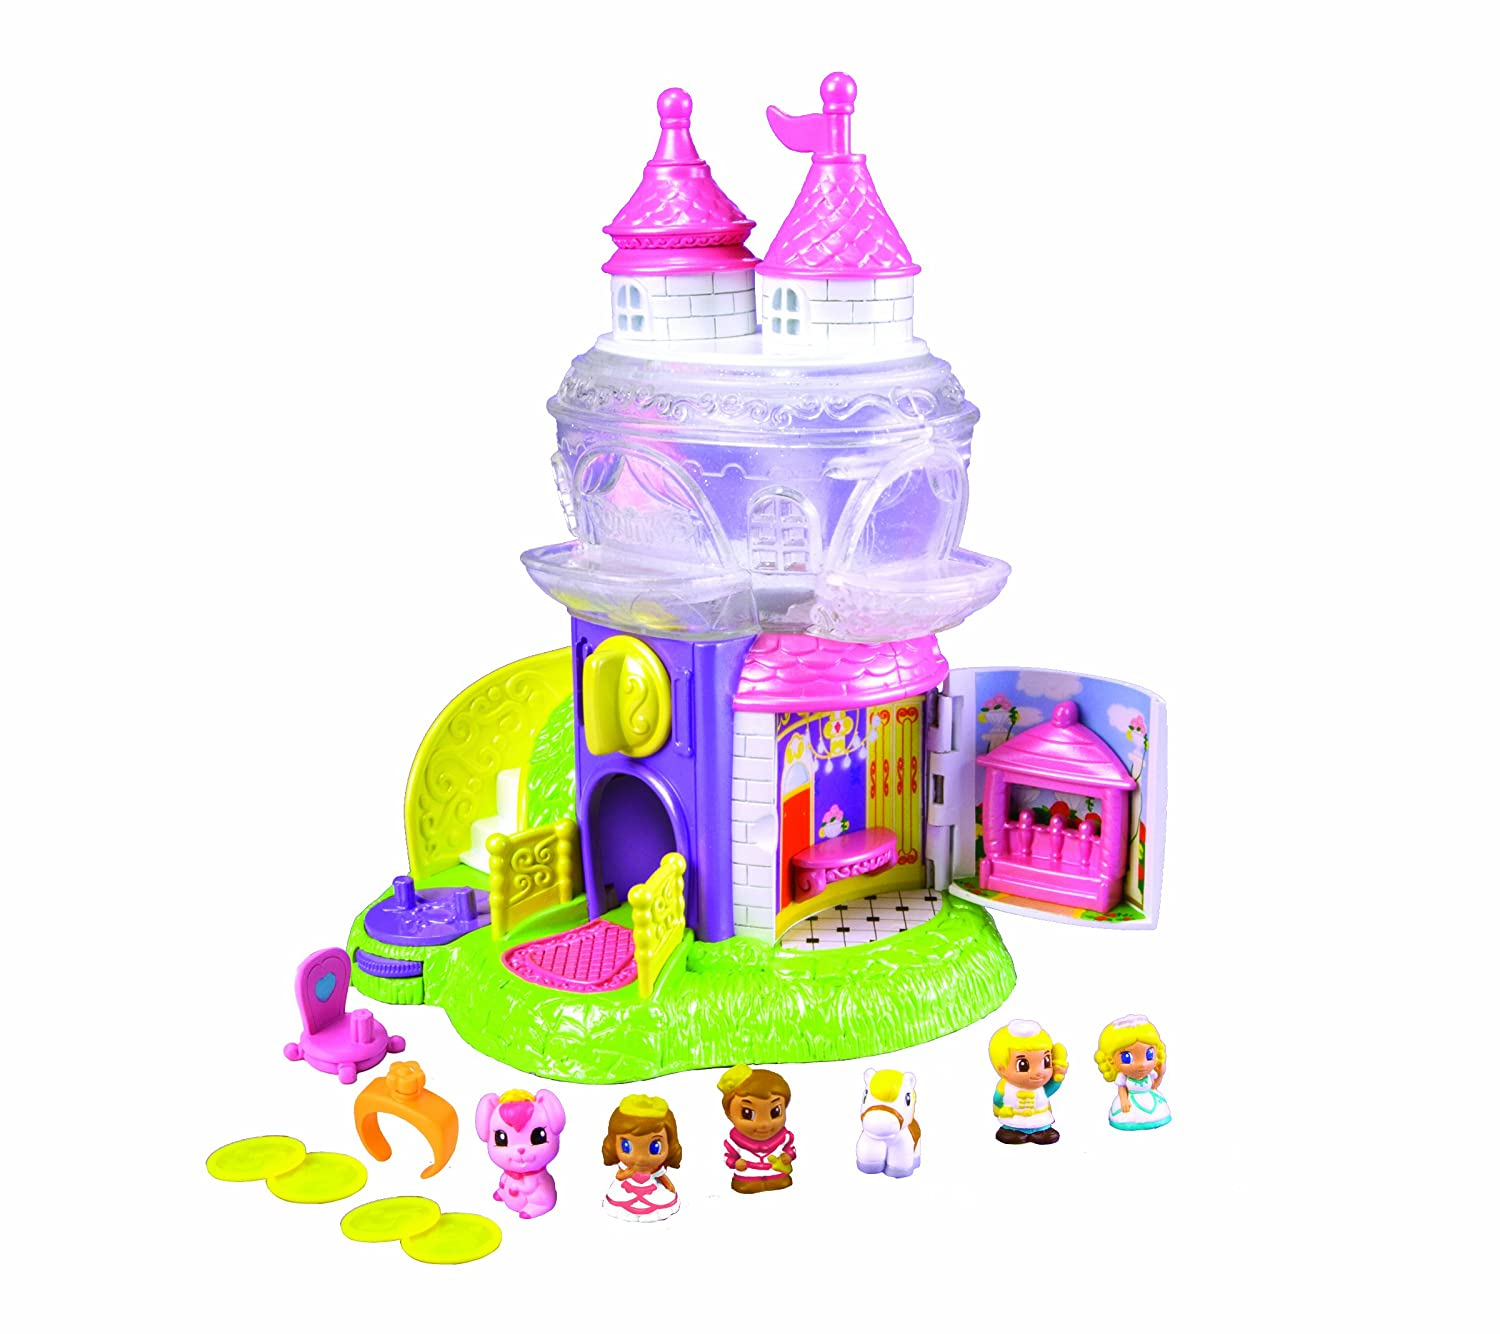 Blip Toys Playset Squinkies Wedding Surprise Surprise Castle Playset Toys B004FPZ9PM, G&T:d84e47f9 --- arvoreazul.com.br